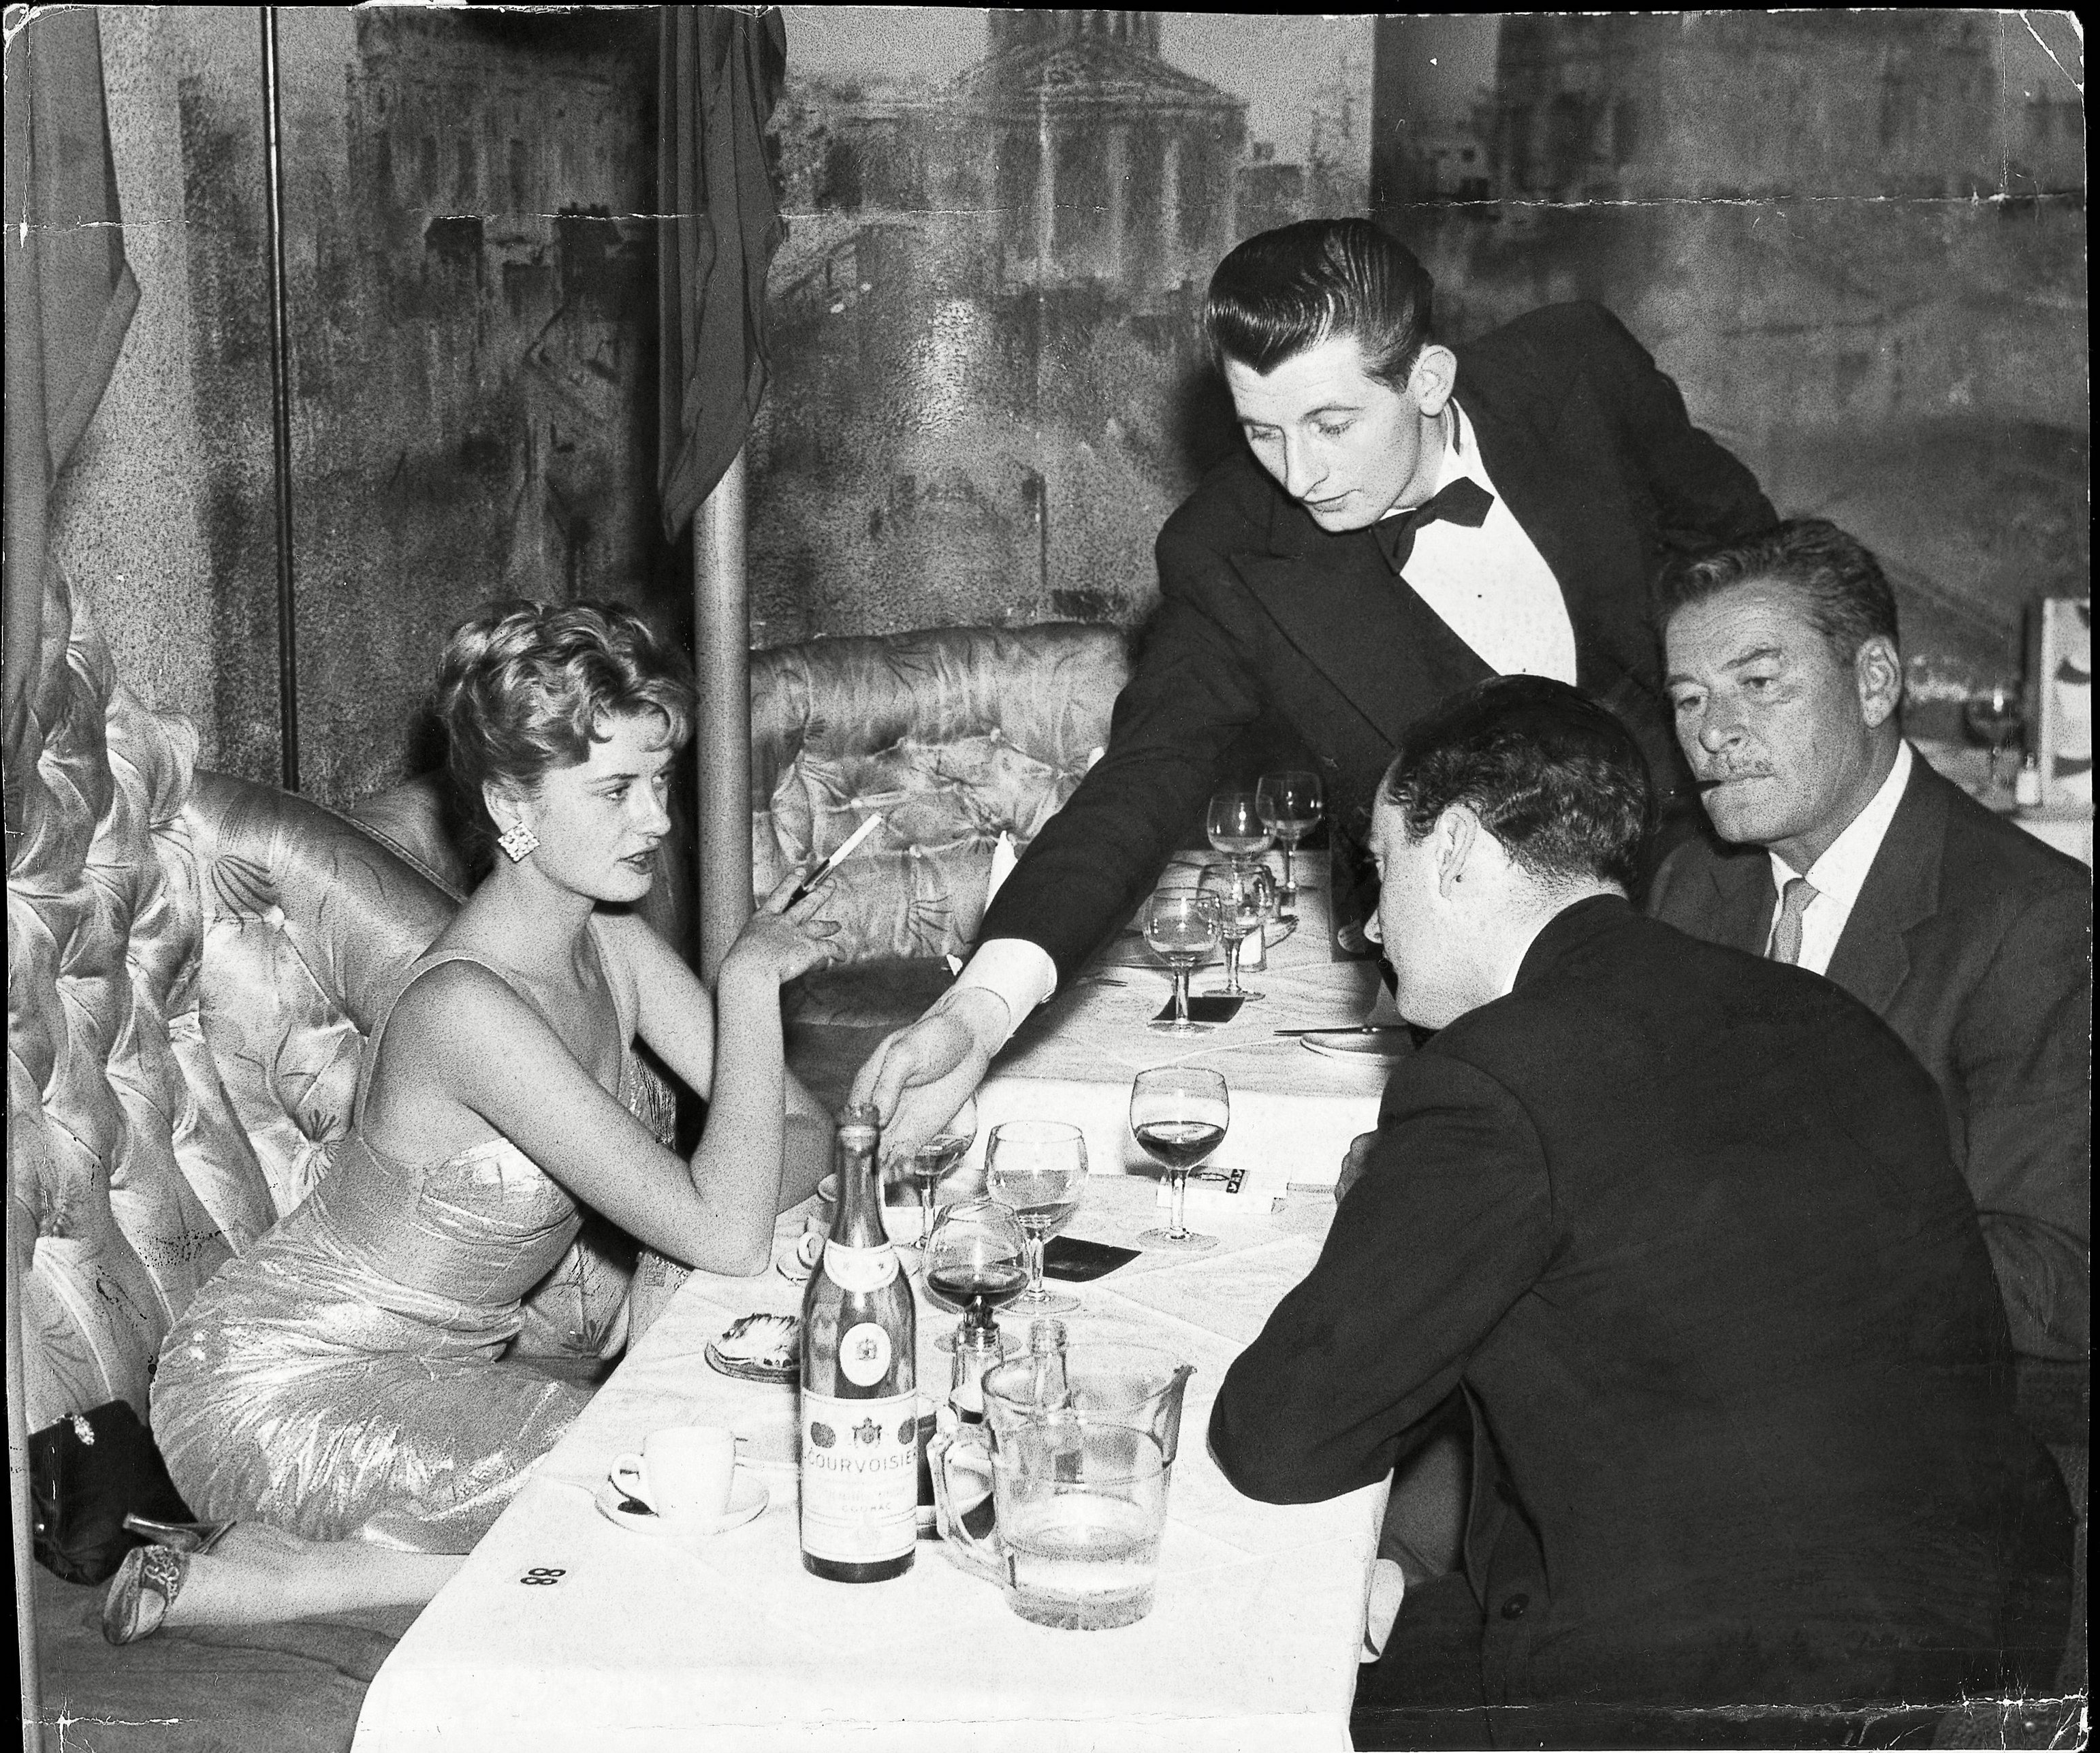 Errol Flynn Pictured With Beverley Aadland at The Lido Nightclub on Swallow Street, just off Piccadilly, 5th May, 1959. The Couple Starred In The Film Cuban Rebel Girls And Had A Highly Publicised Relationship For The Last Two Years Of Flynn's Life.